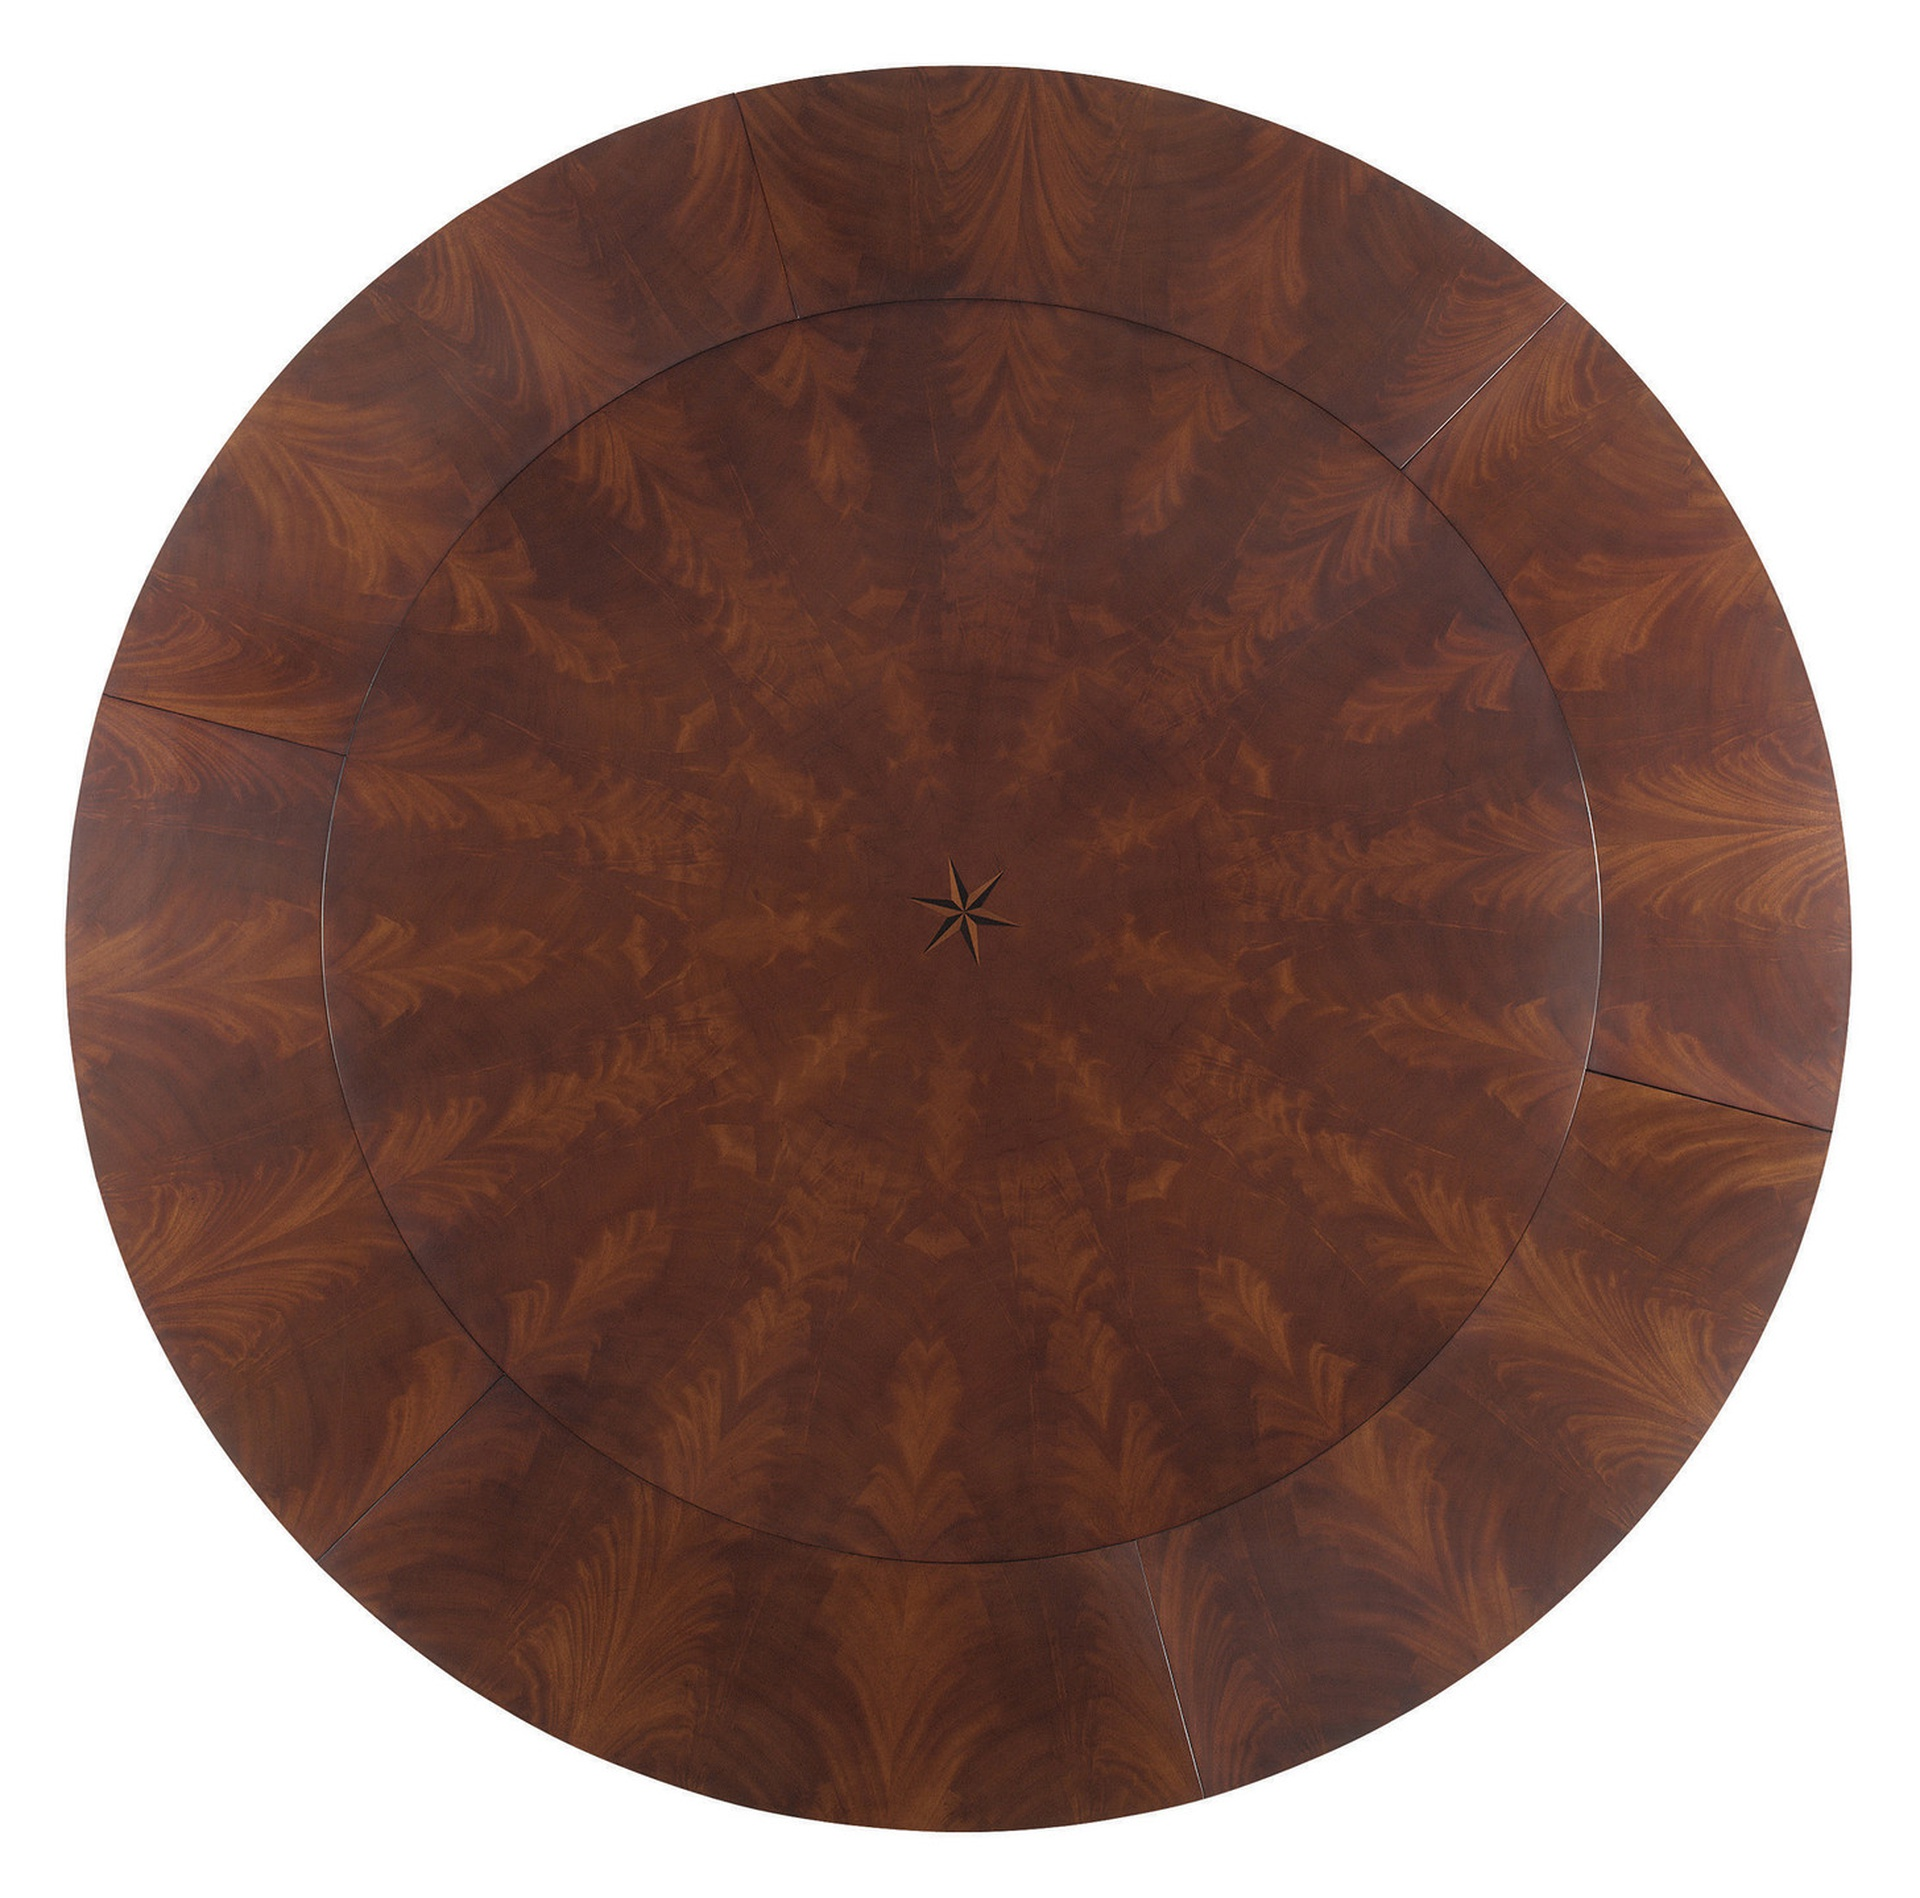 60 Round Dining Table With Leaf